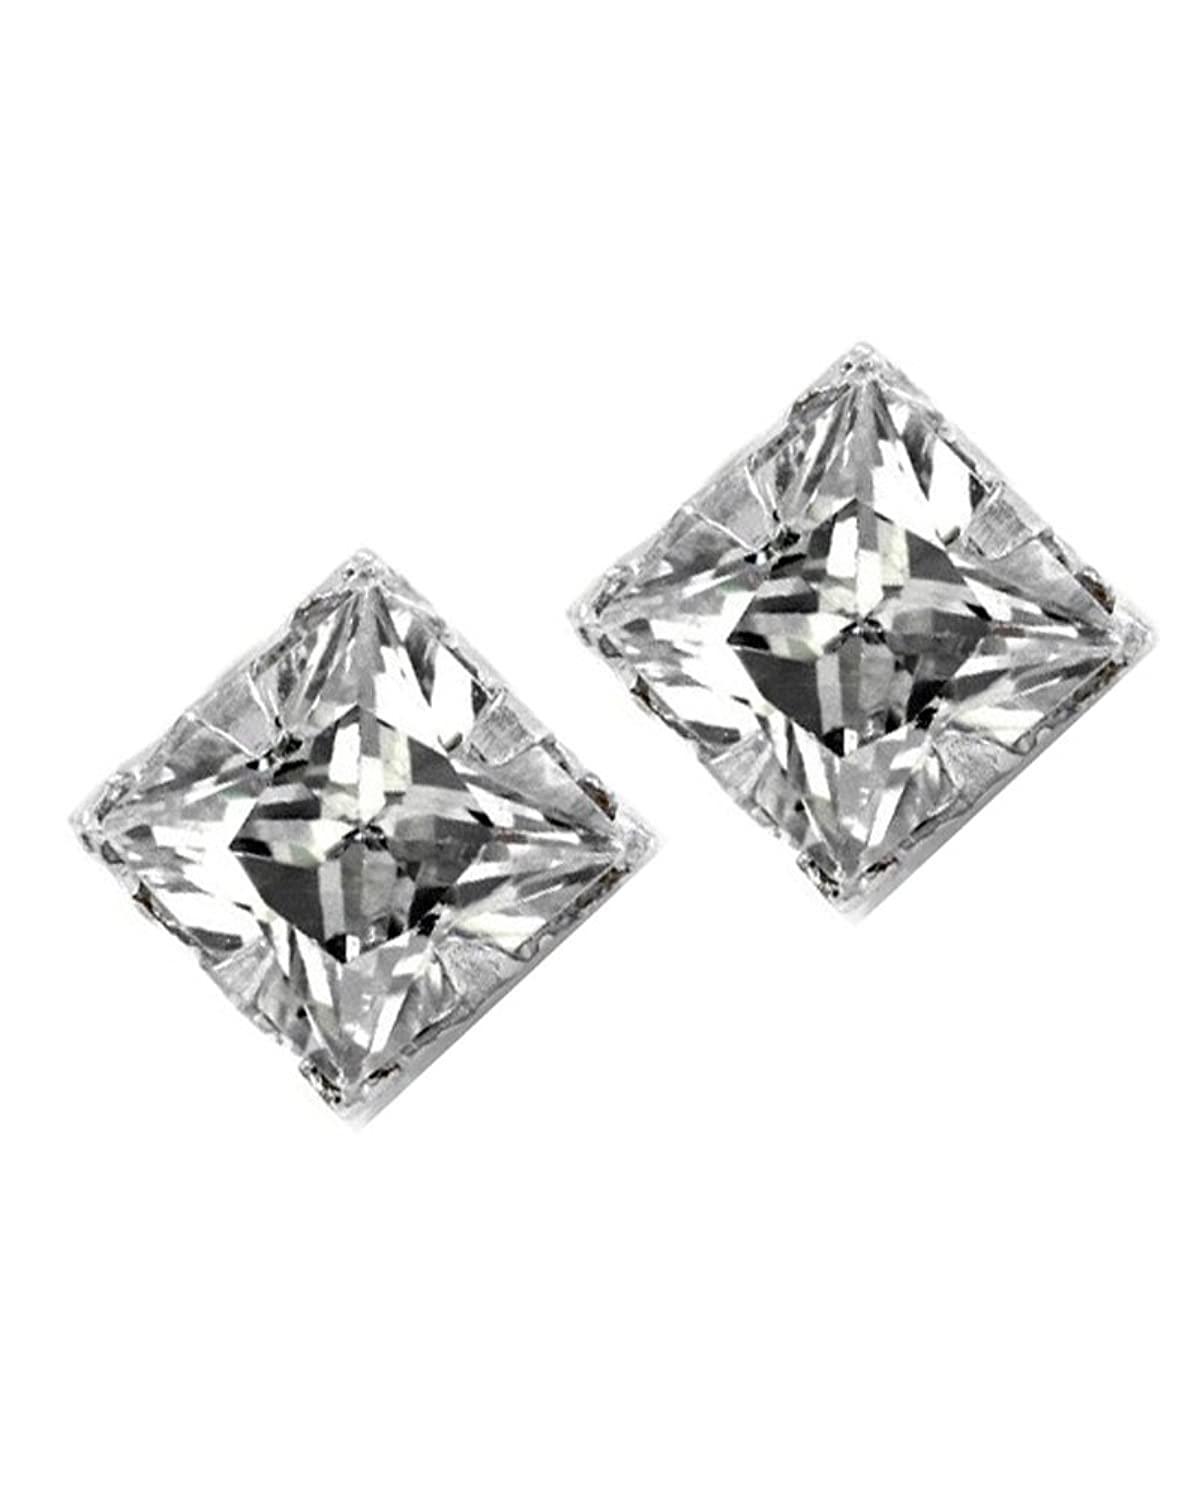 gauge diamond steel stainless gauges cz fake stud plugs